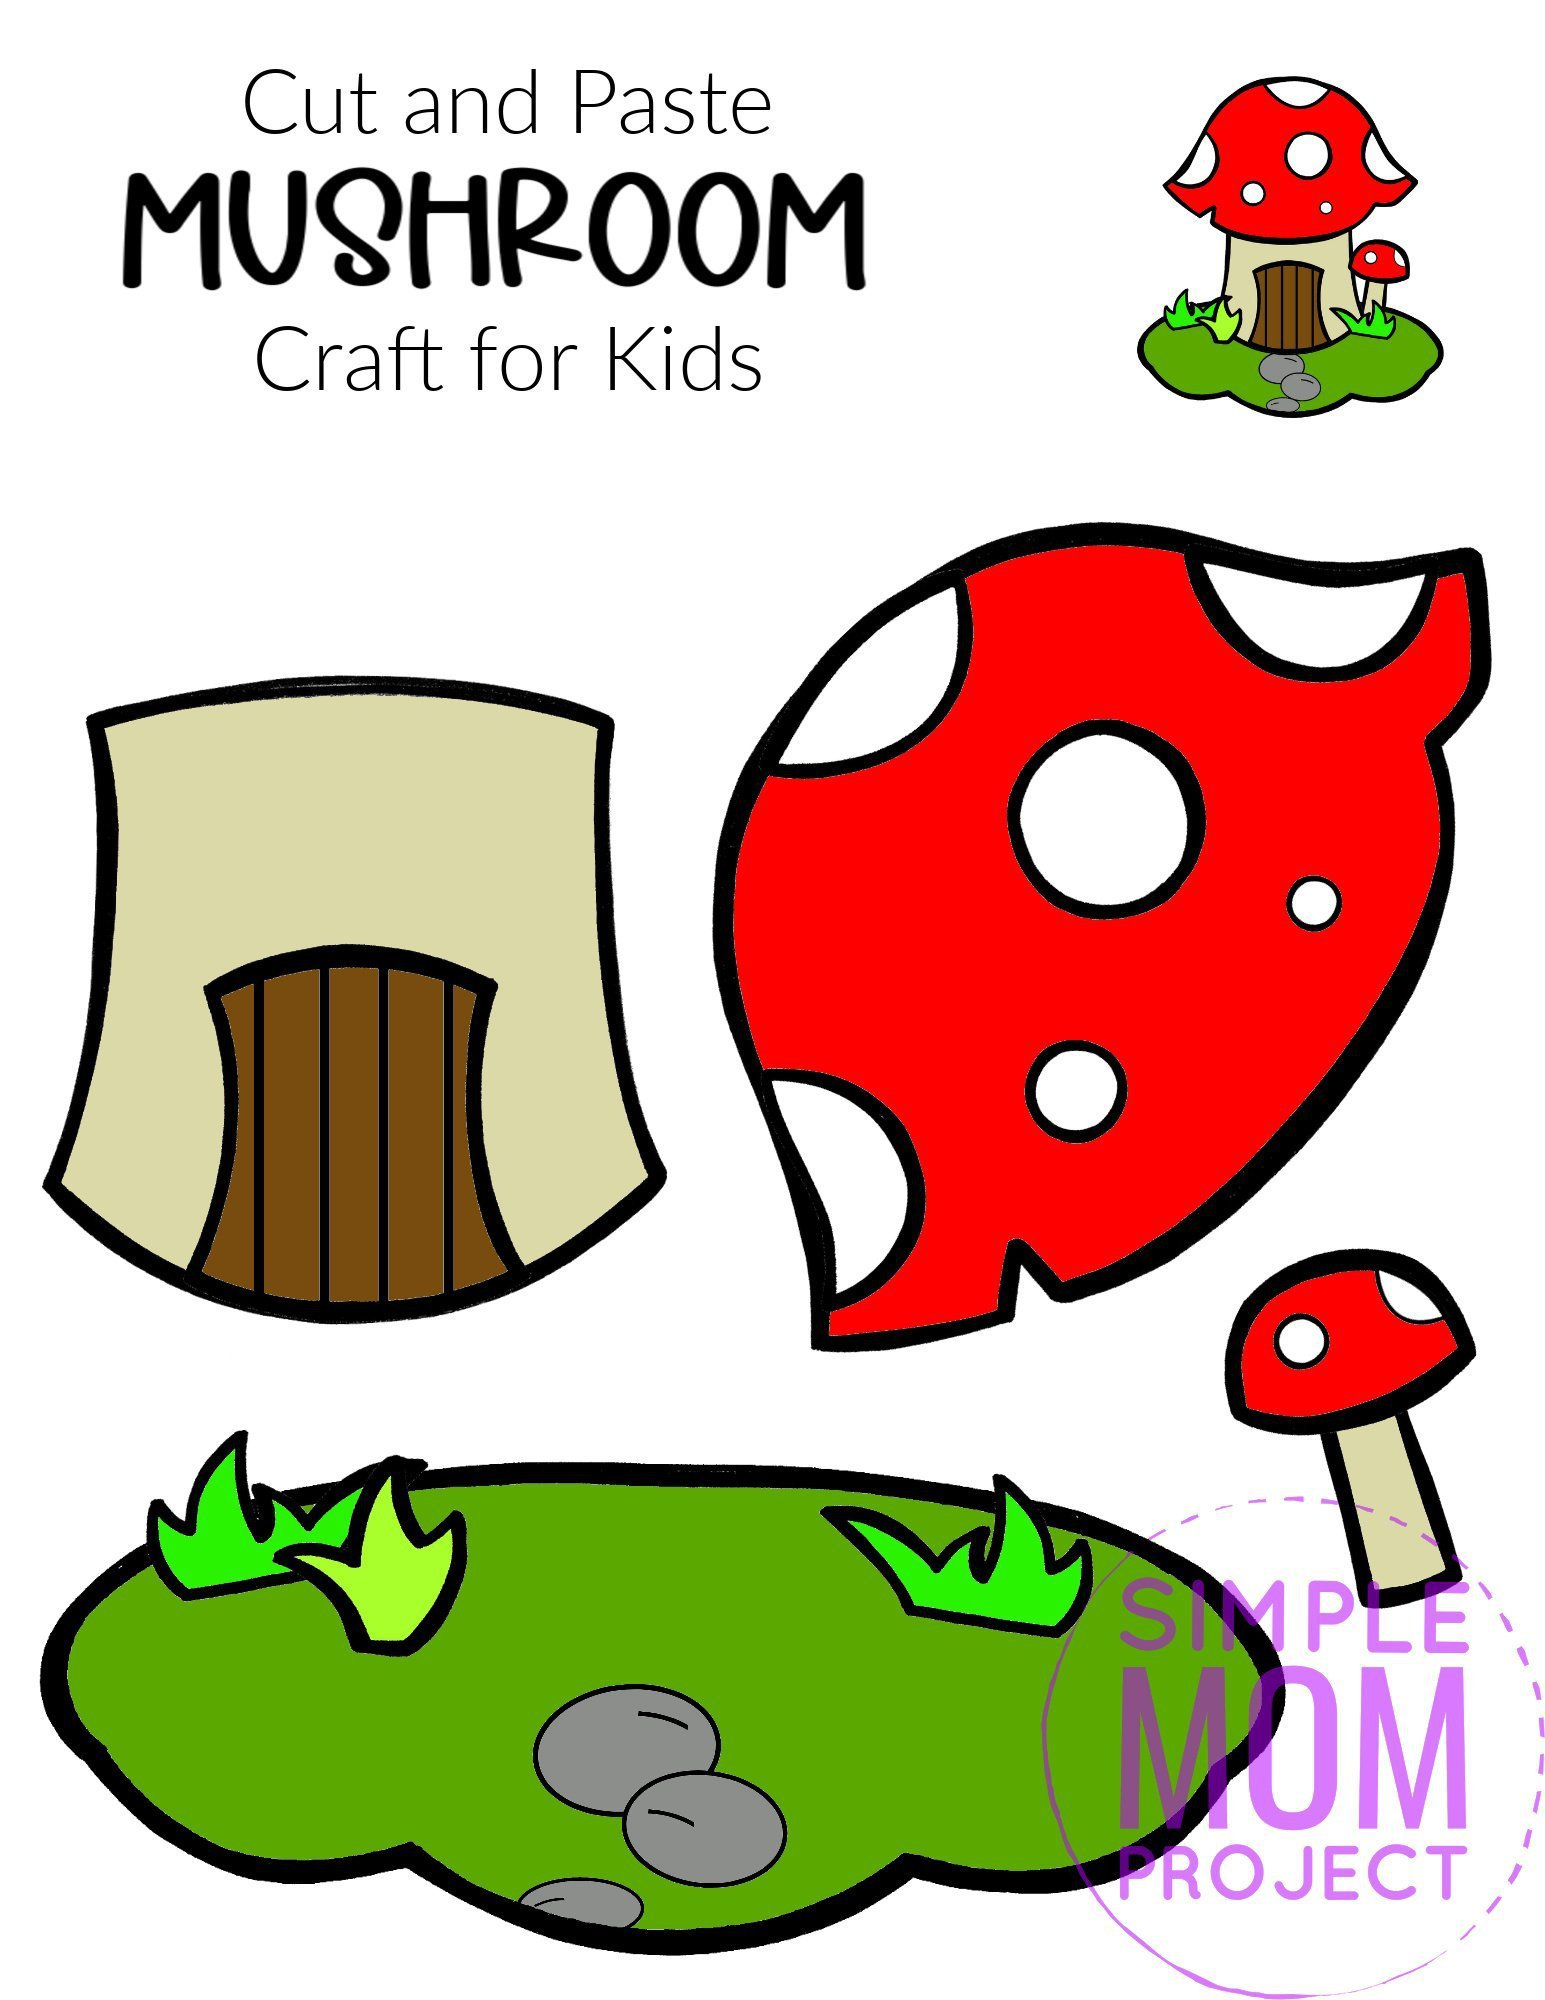 Free Printable Cut and Paste Mushroom Craft Template Craft for kids, preschoolers and toddlers